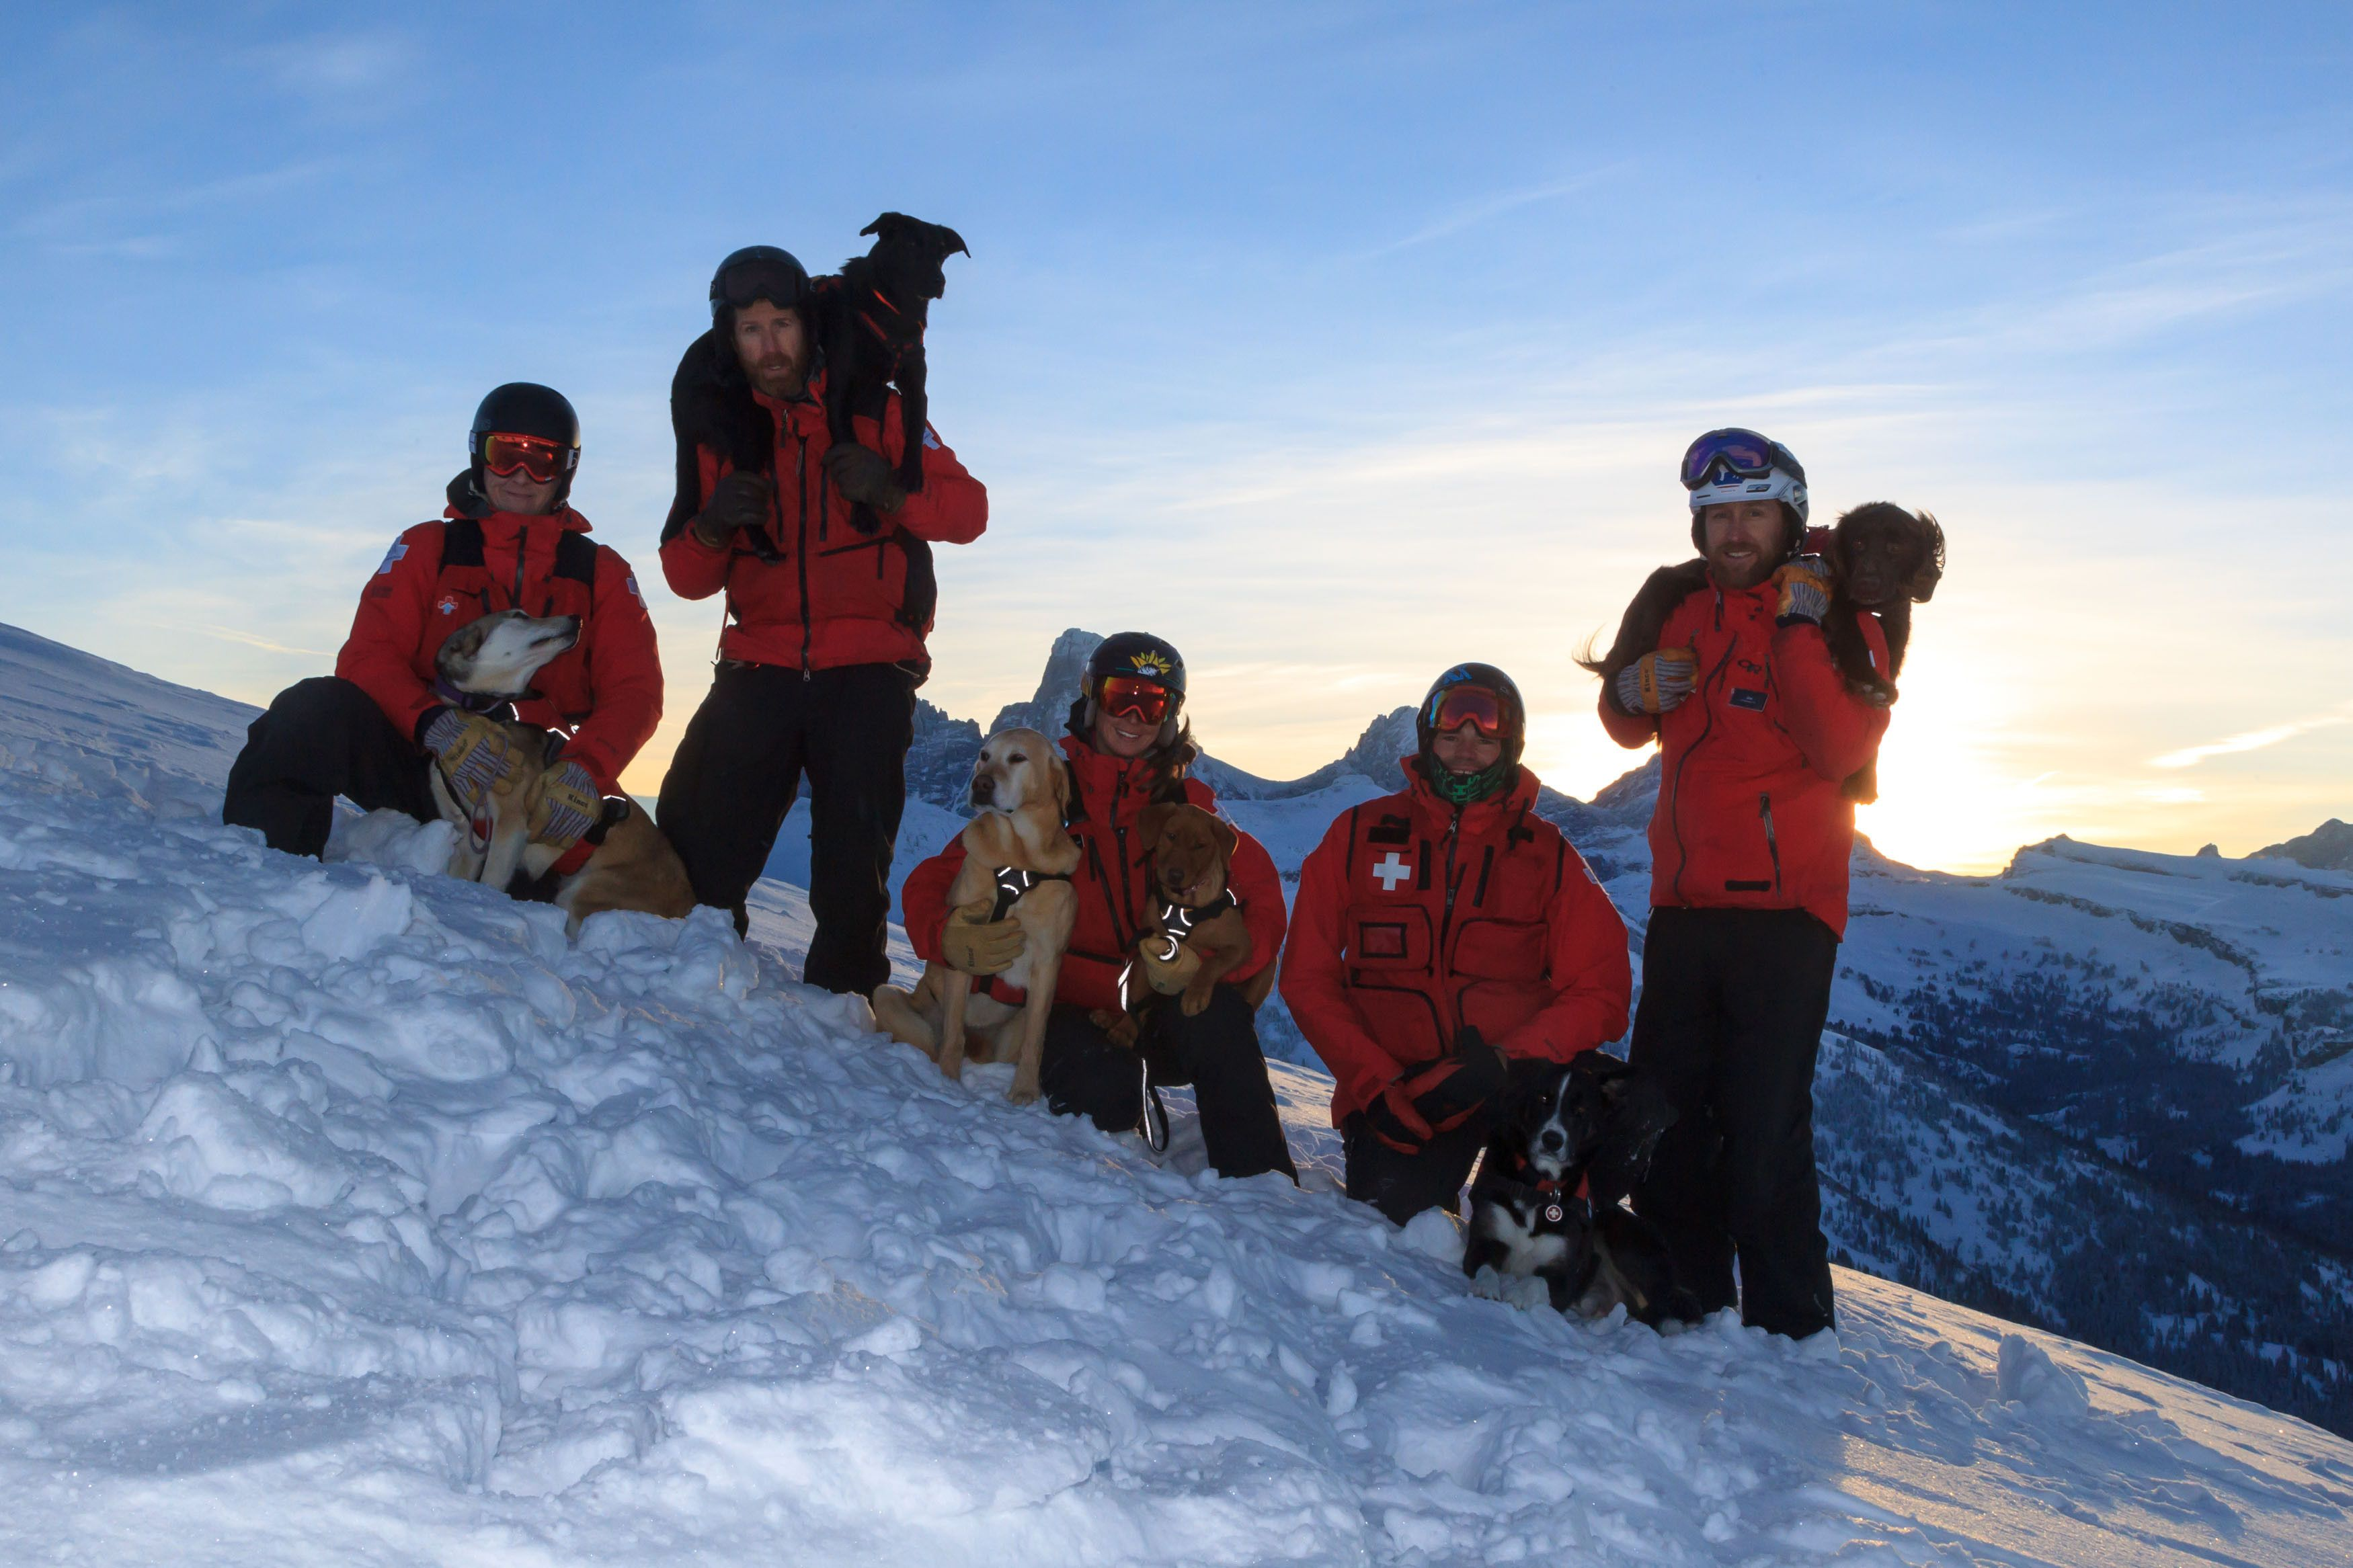 Tails From The Ski Resort David And Yuki Jason And Tuka Becca Leo And Ivy Kevin And Burdock Joe And Otter From Grand Targhee Skiing Working Dogs War Dogs